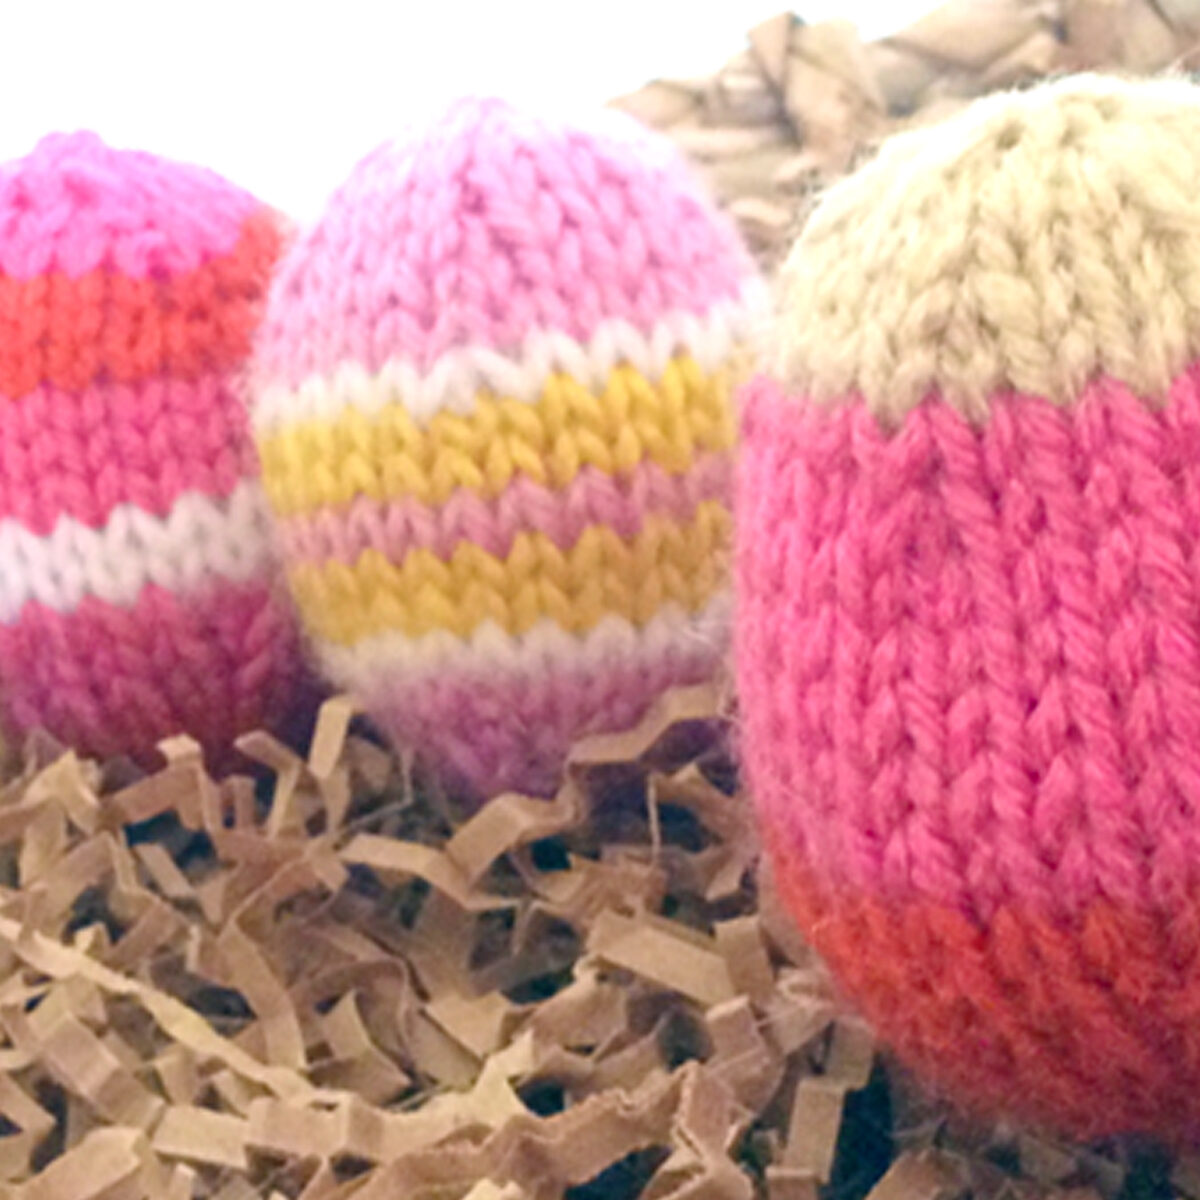 Knitted Easter Egg Softies in yellow and pink yarn colors.